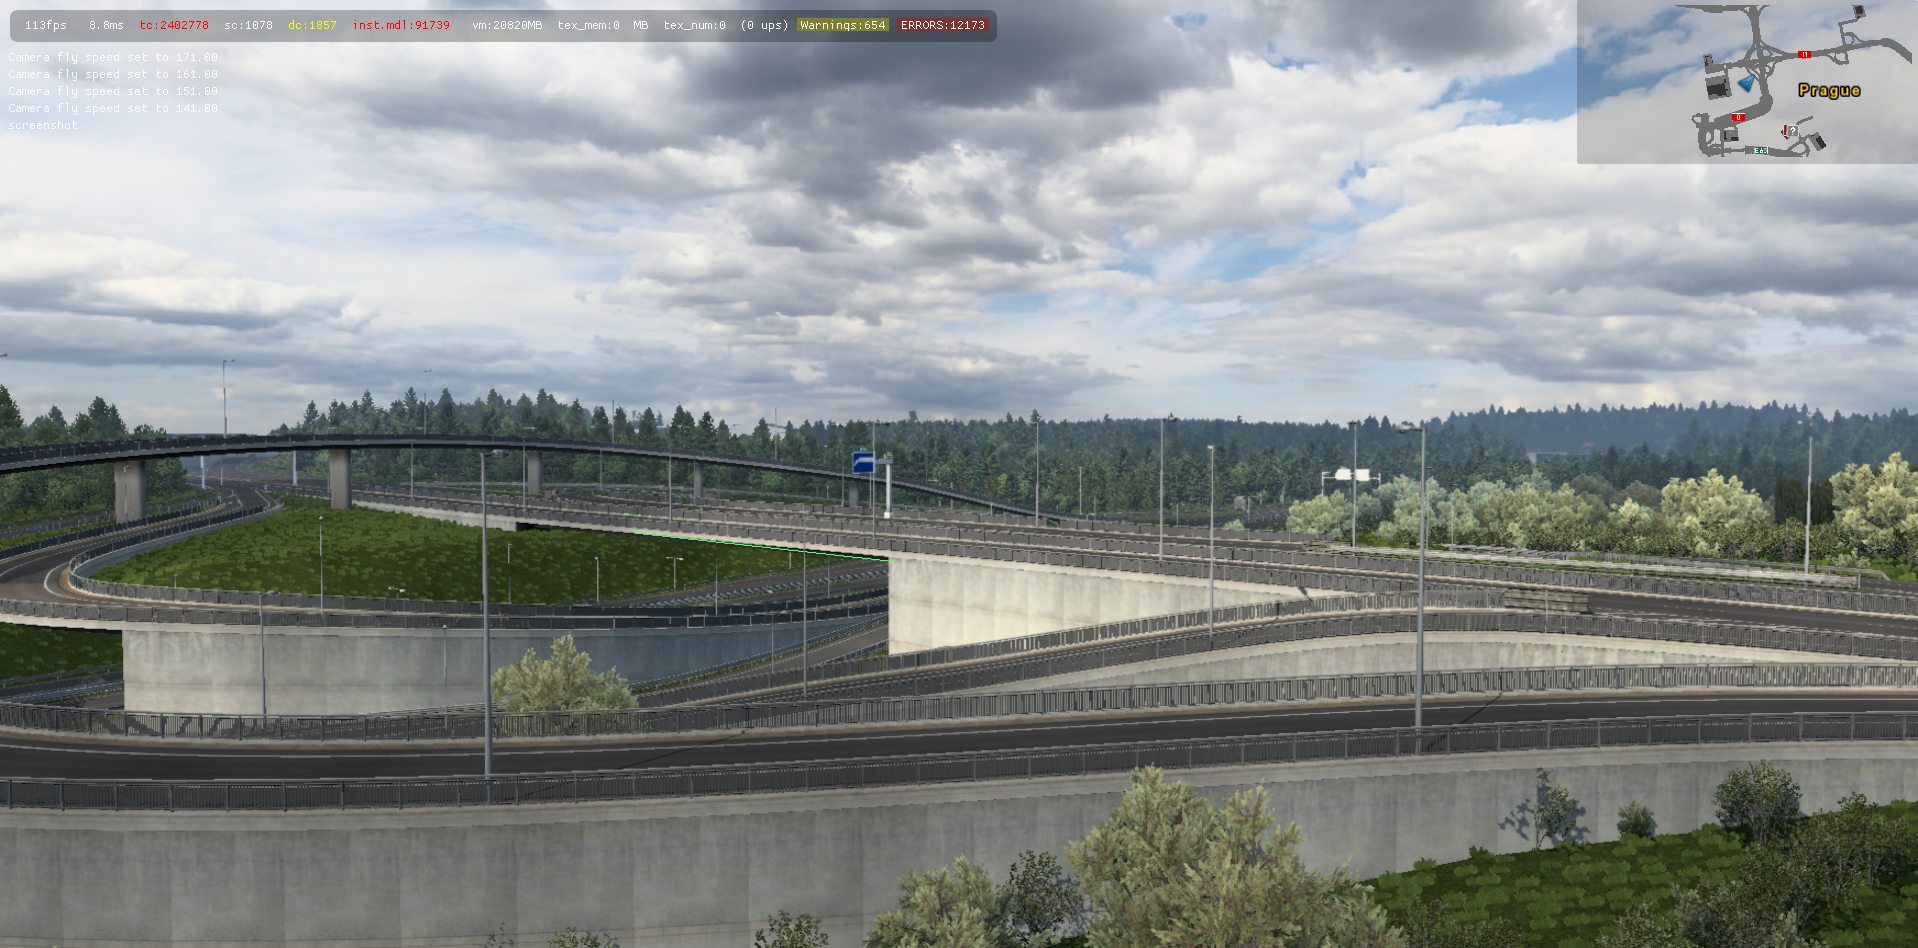 ets2_20210531_204005_00.png